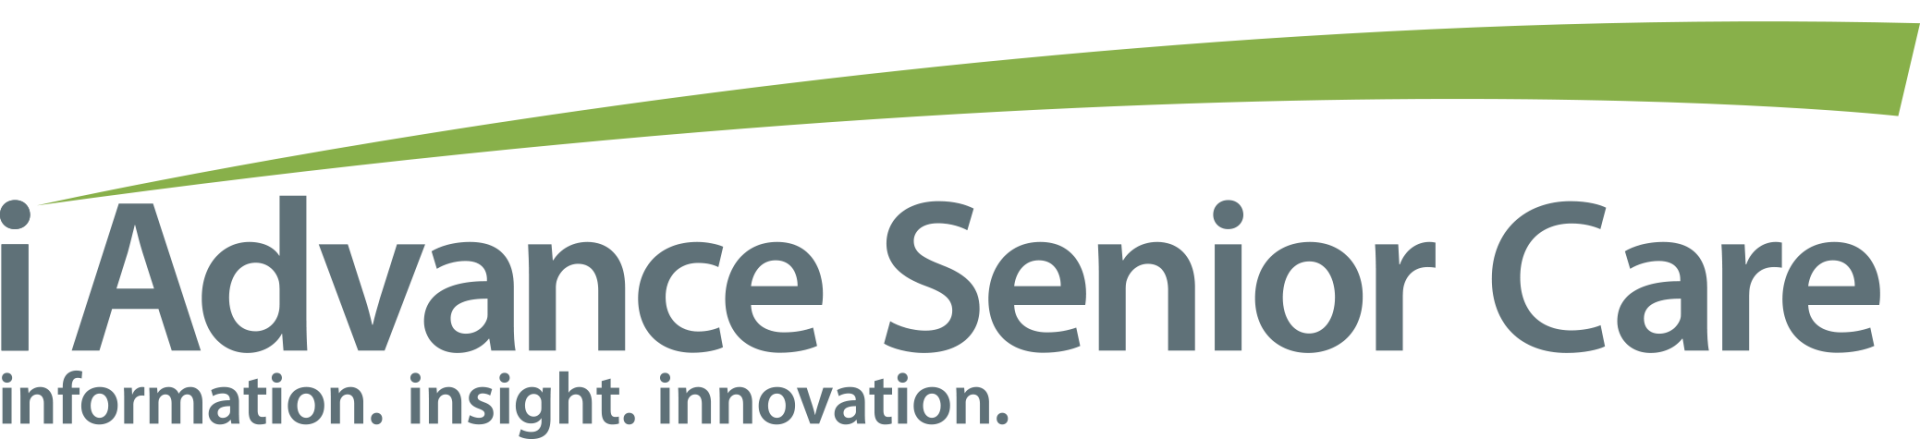 iAdvance Senior Care logo